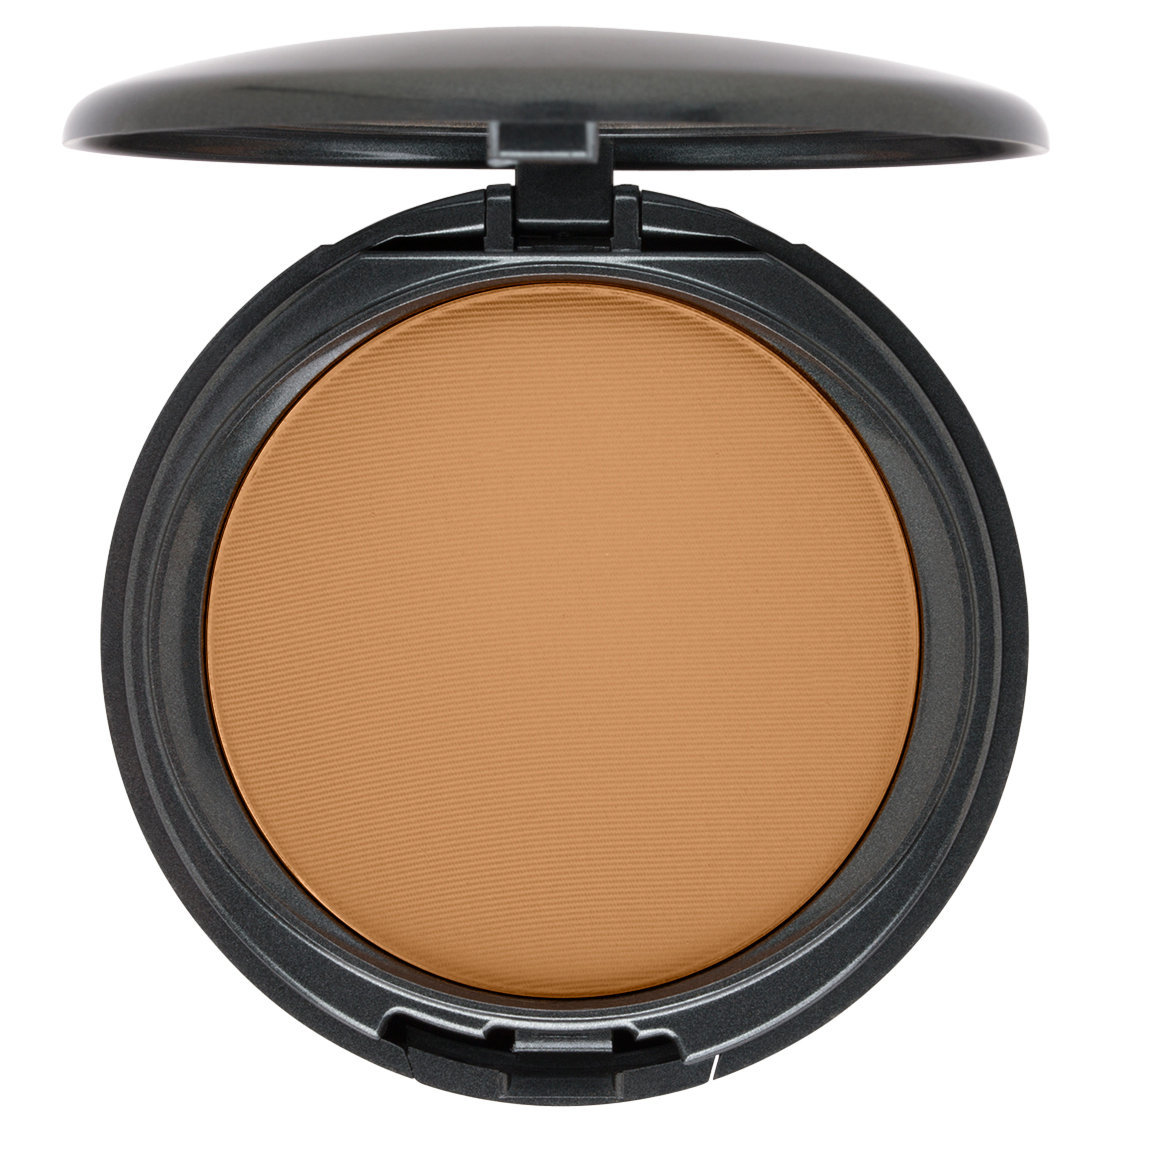 COVER | FX Pressed Mineral Foundation N50 alternative view 1 - product swatch.